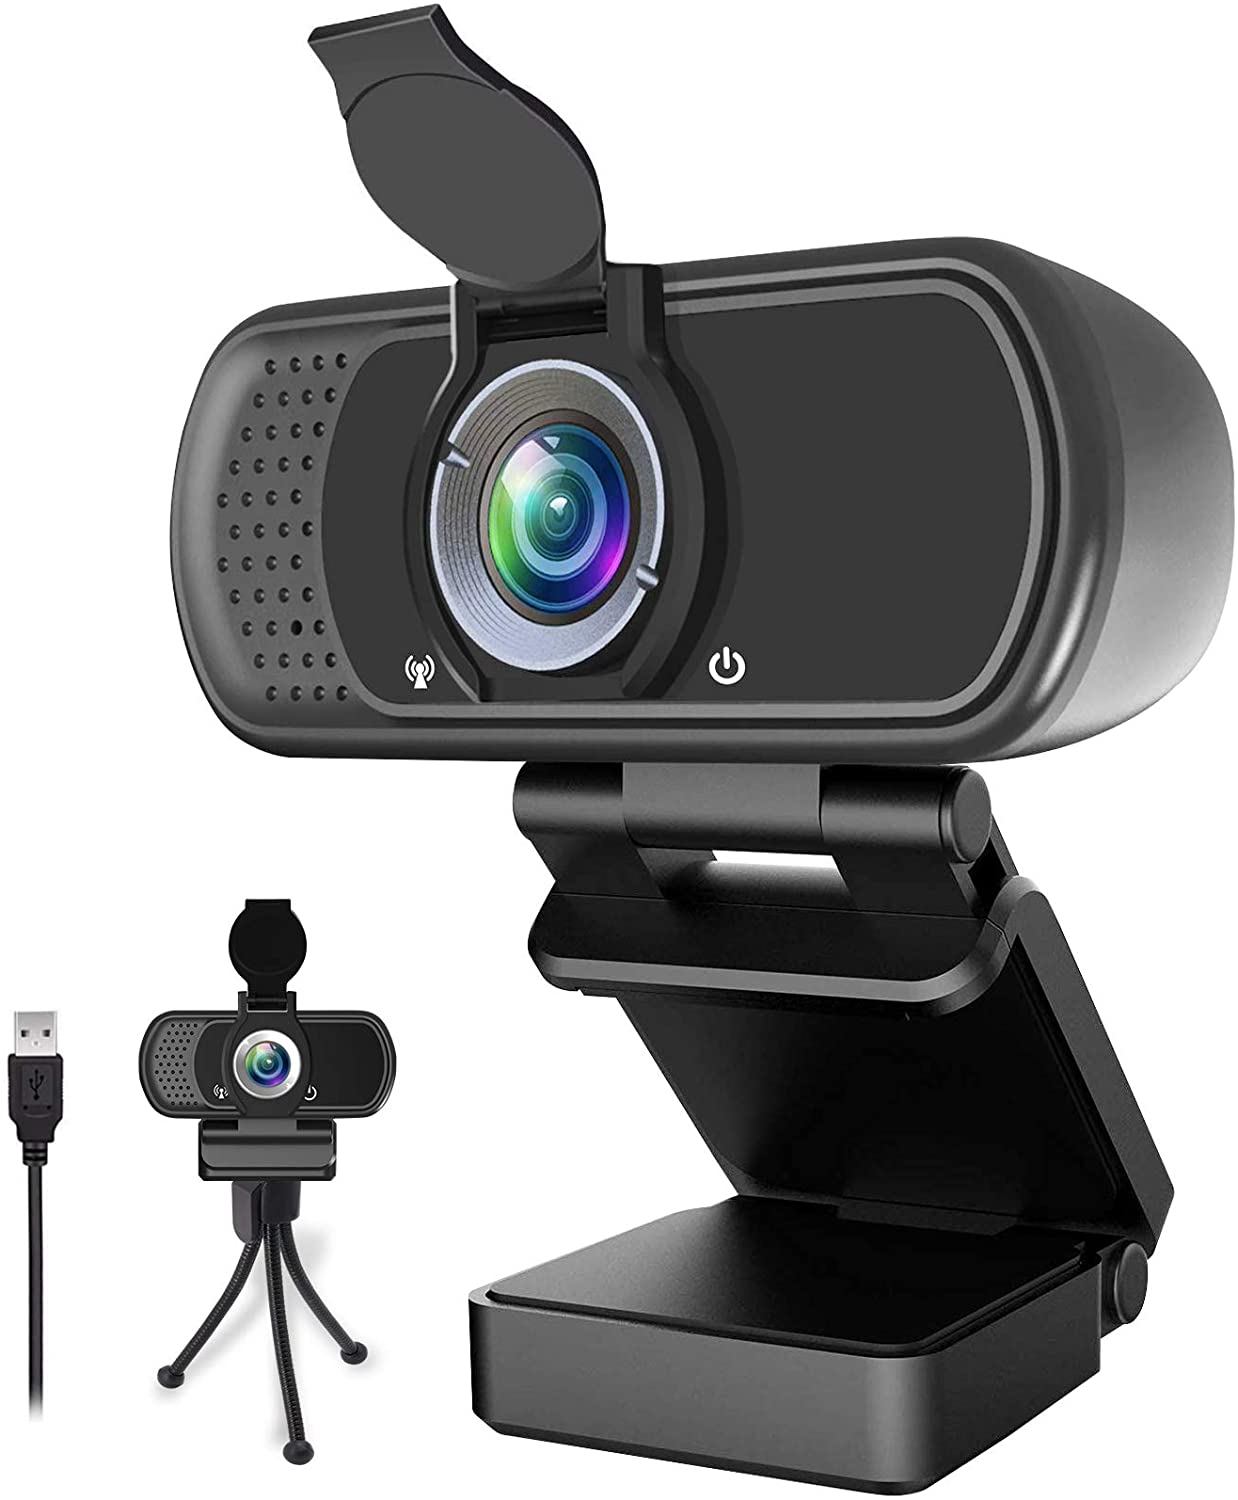 1080P HD Webcam Streaming Computer Camera Conferencing USB Webcam Built in Dual Noise Reduction Microphone with Wide View Angel for PC Desktop Laptop Video Calling Webcam with Microphone